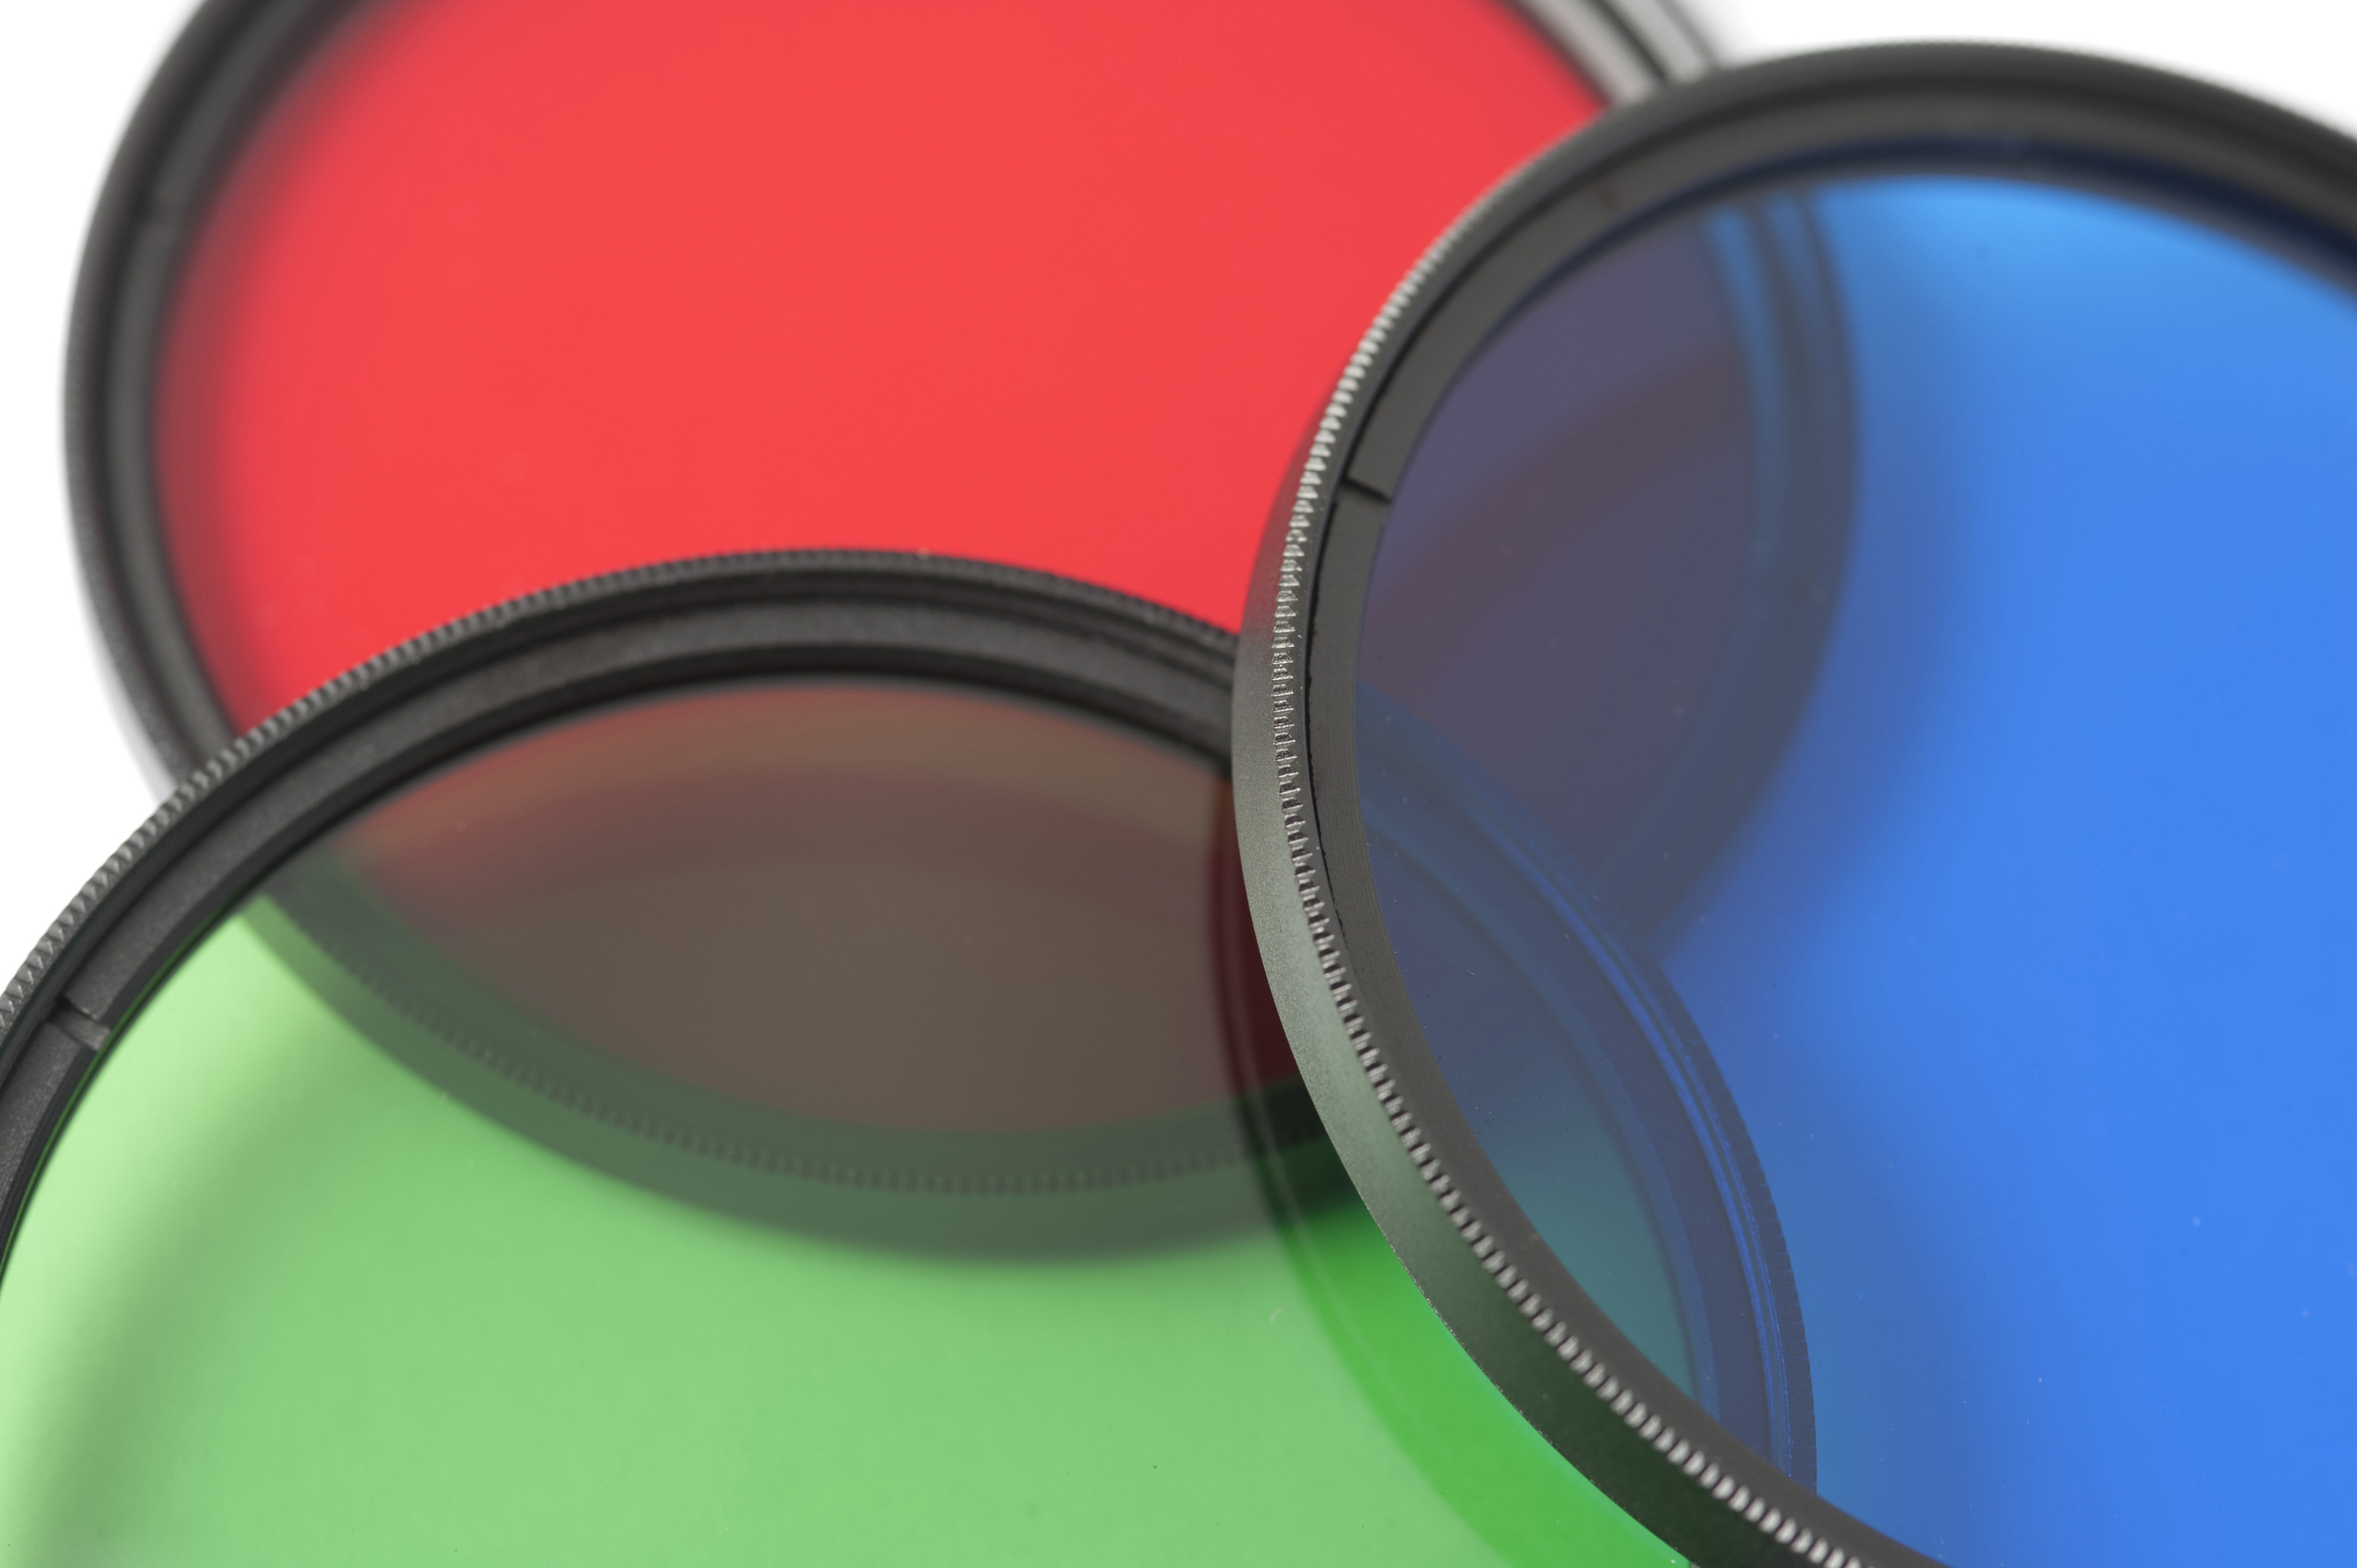 Set of three circular red, green and blue primary glass filters arranged to overlap, closeup detail